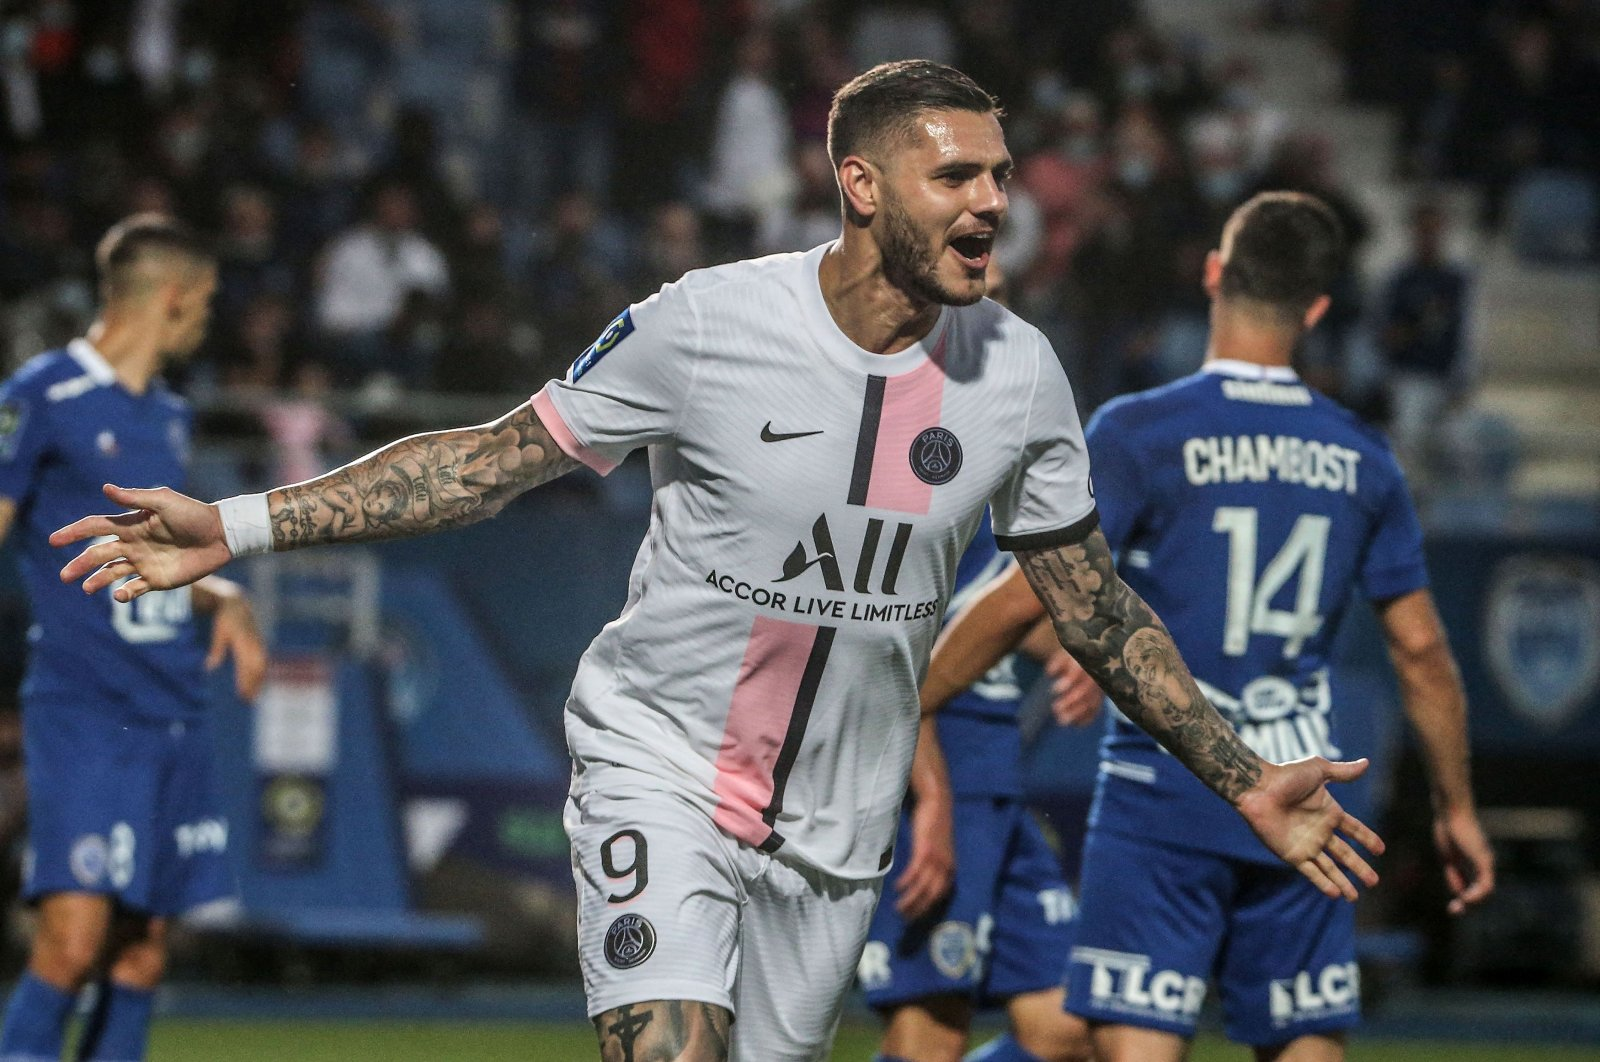 Paris Saint-Germain's Argentinian forward Mauro Icardi celebrates after scoring a goal during the French Ligue 1 match against Troyes at the Stade de l'Aube in Troyes, France, Aug. 7, 2021. (AFP Photo)